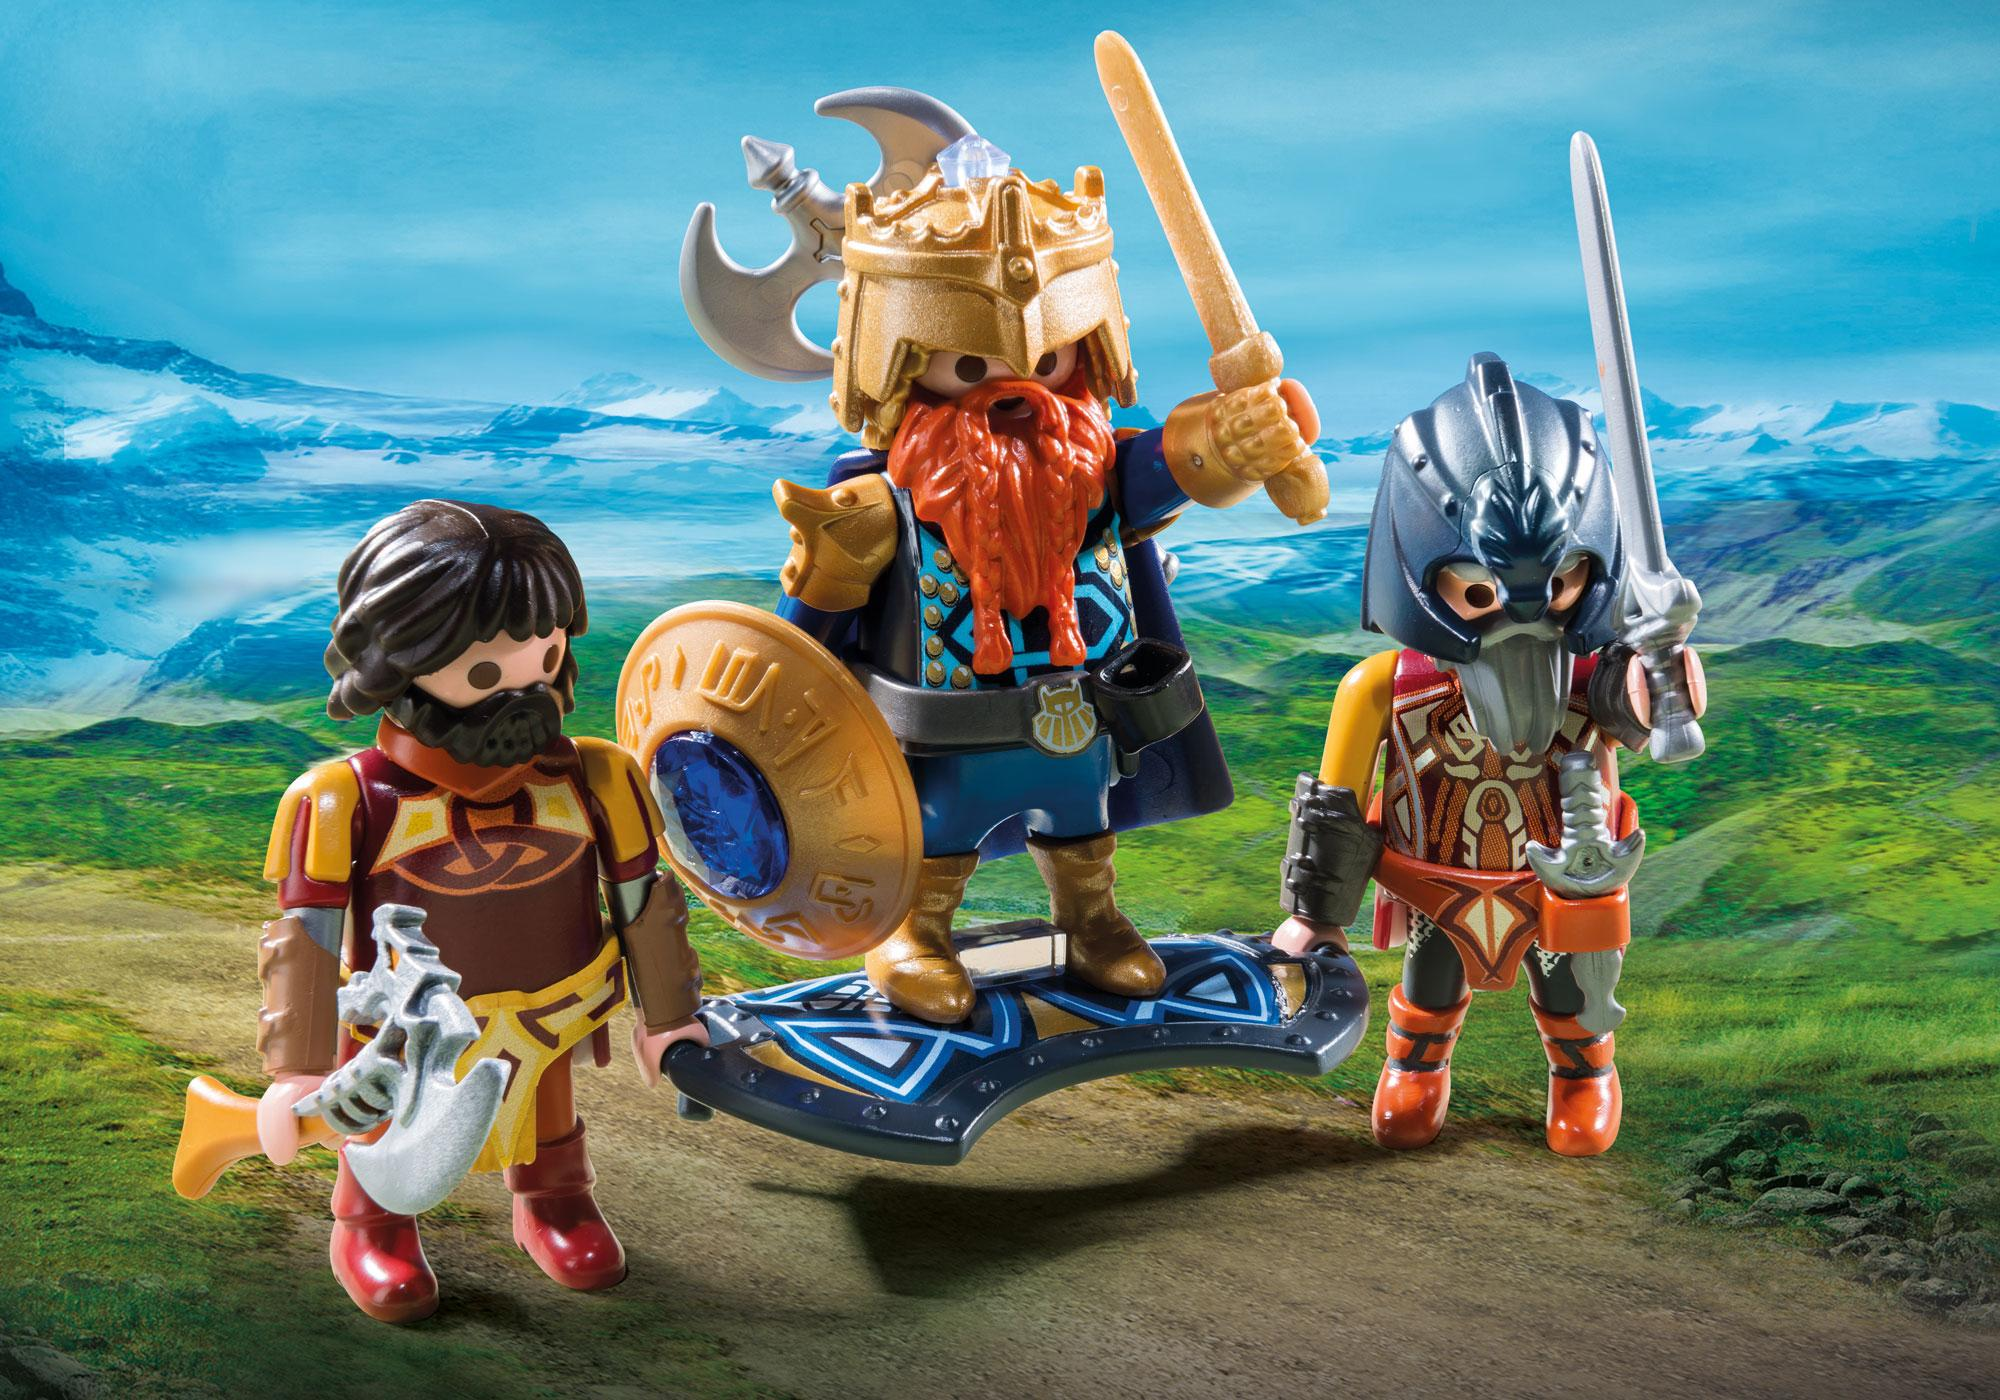 http://media.playmobil.com/i/playmobil/9344_product_extra1/Re Guerriero